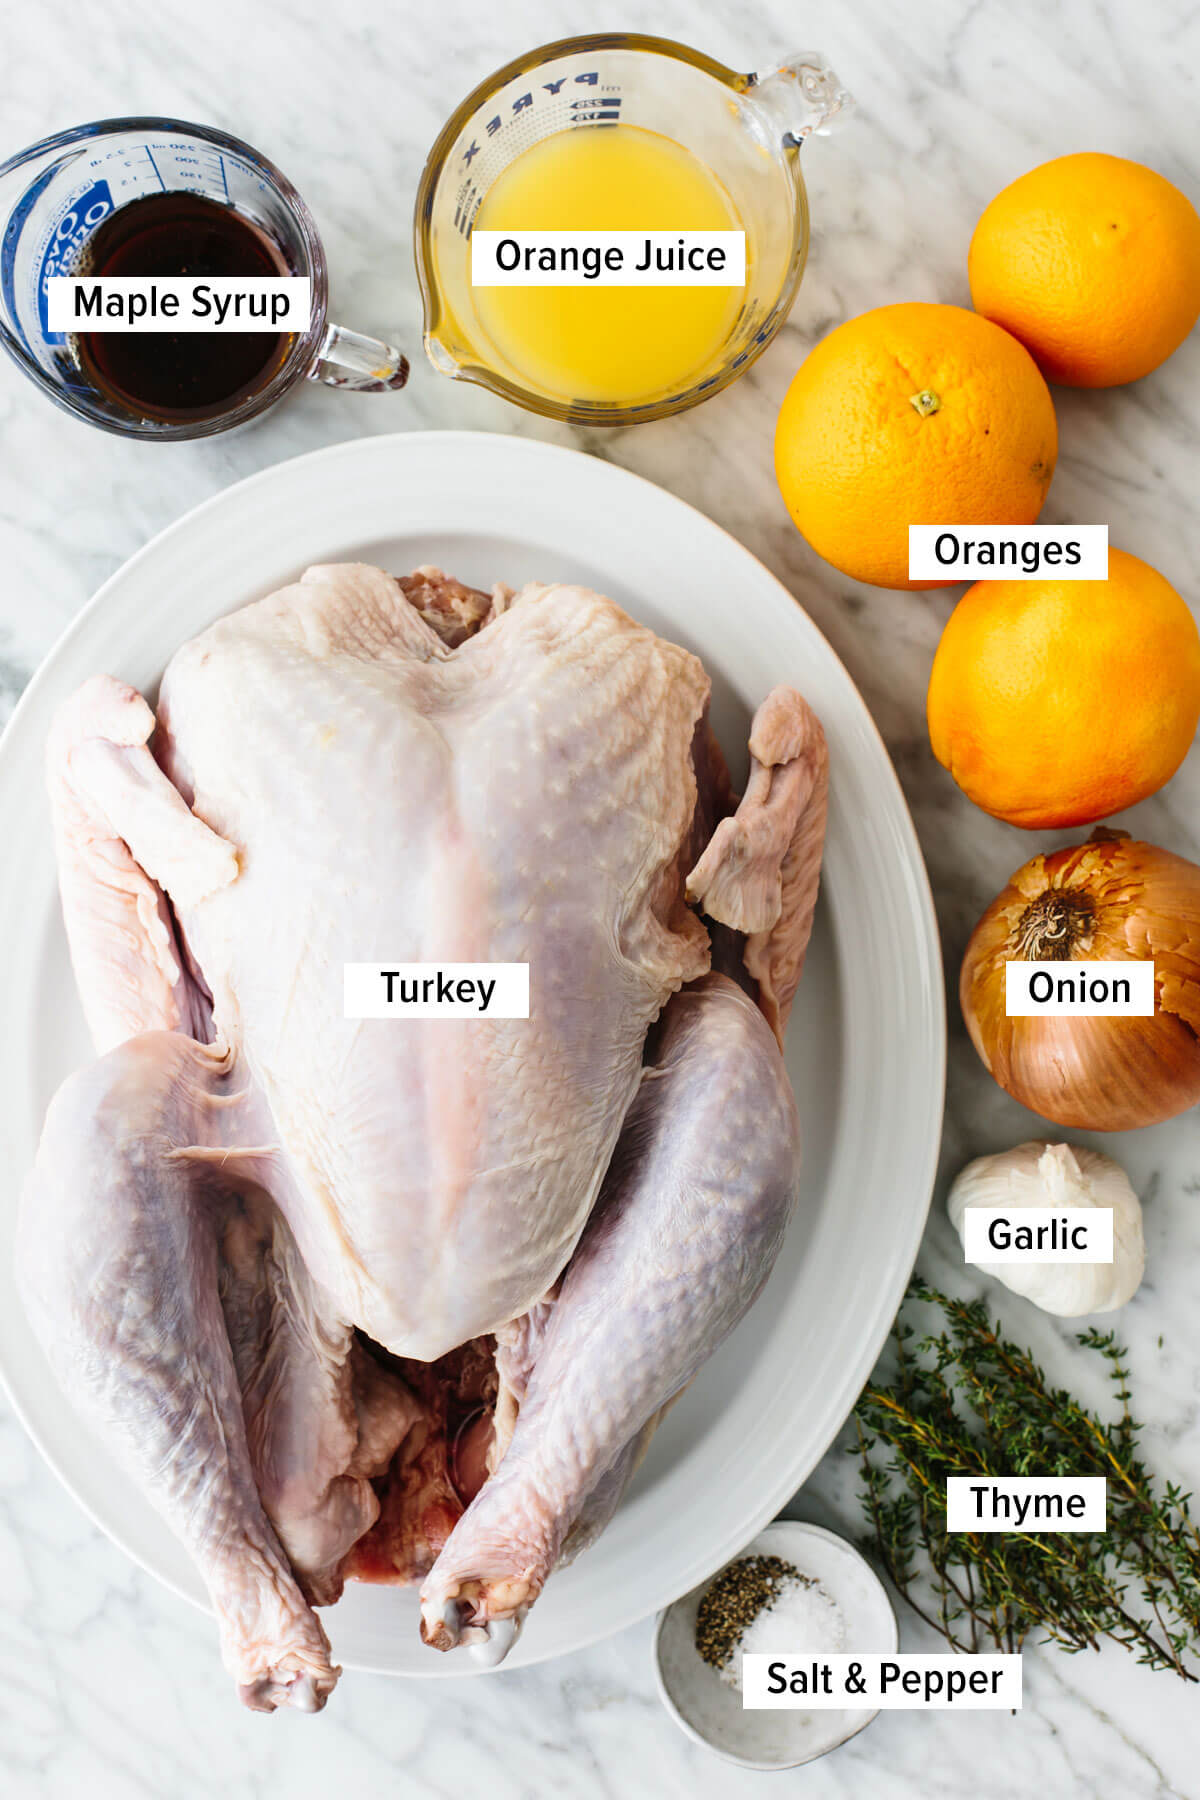 Ingredients for a maple orange glazed spatchcock turkey on a table.